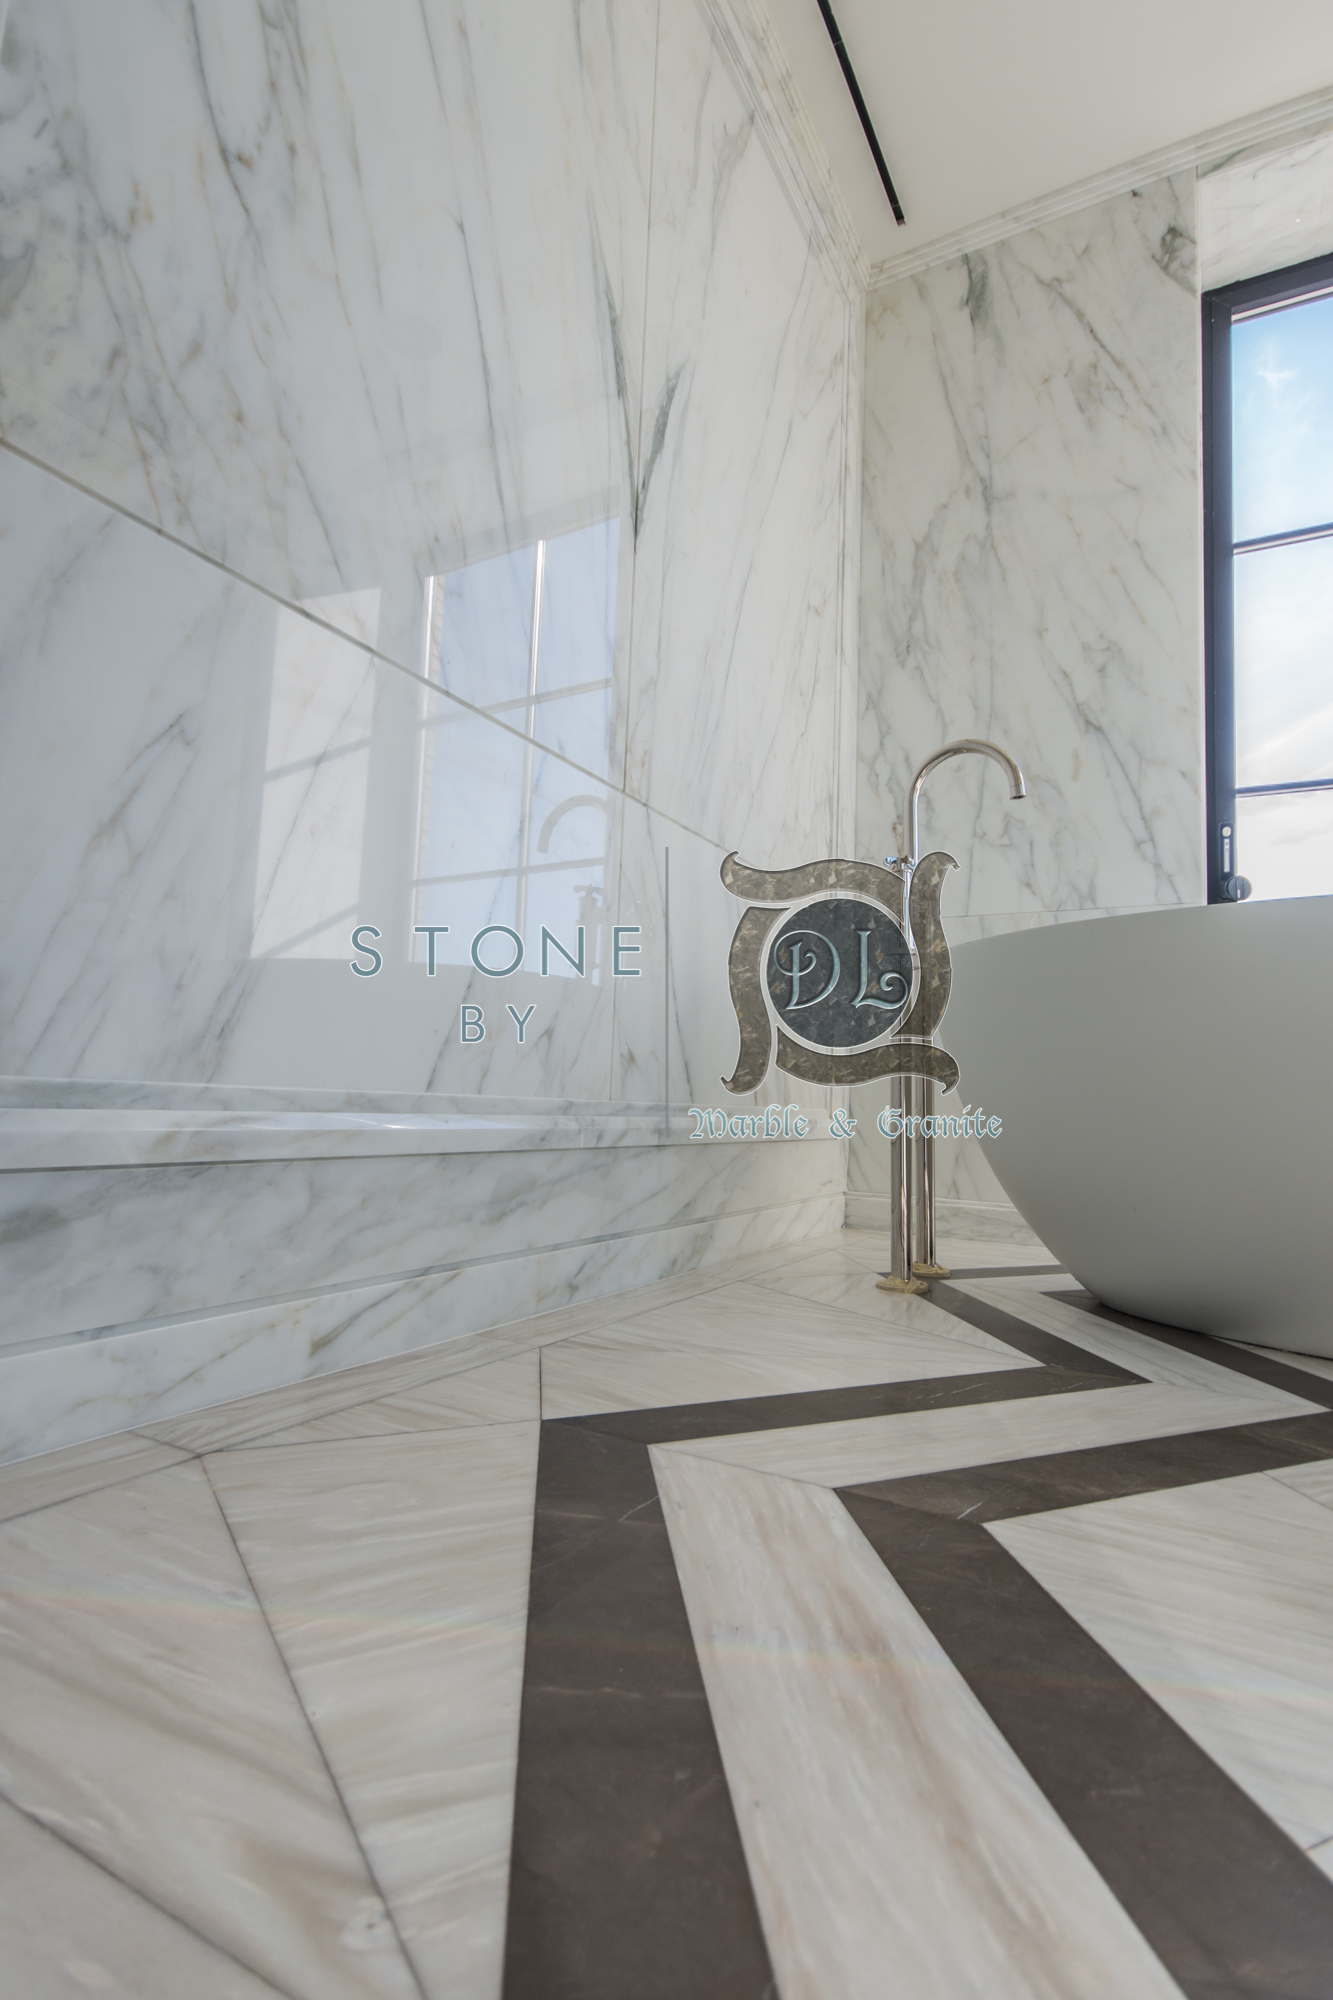 DSC_8192 - Stone by DL Marble and Granite Inc. Walker Tower.jpg